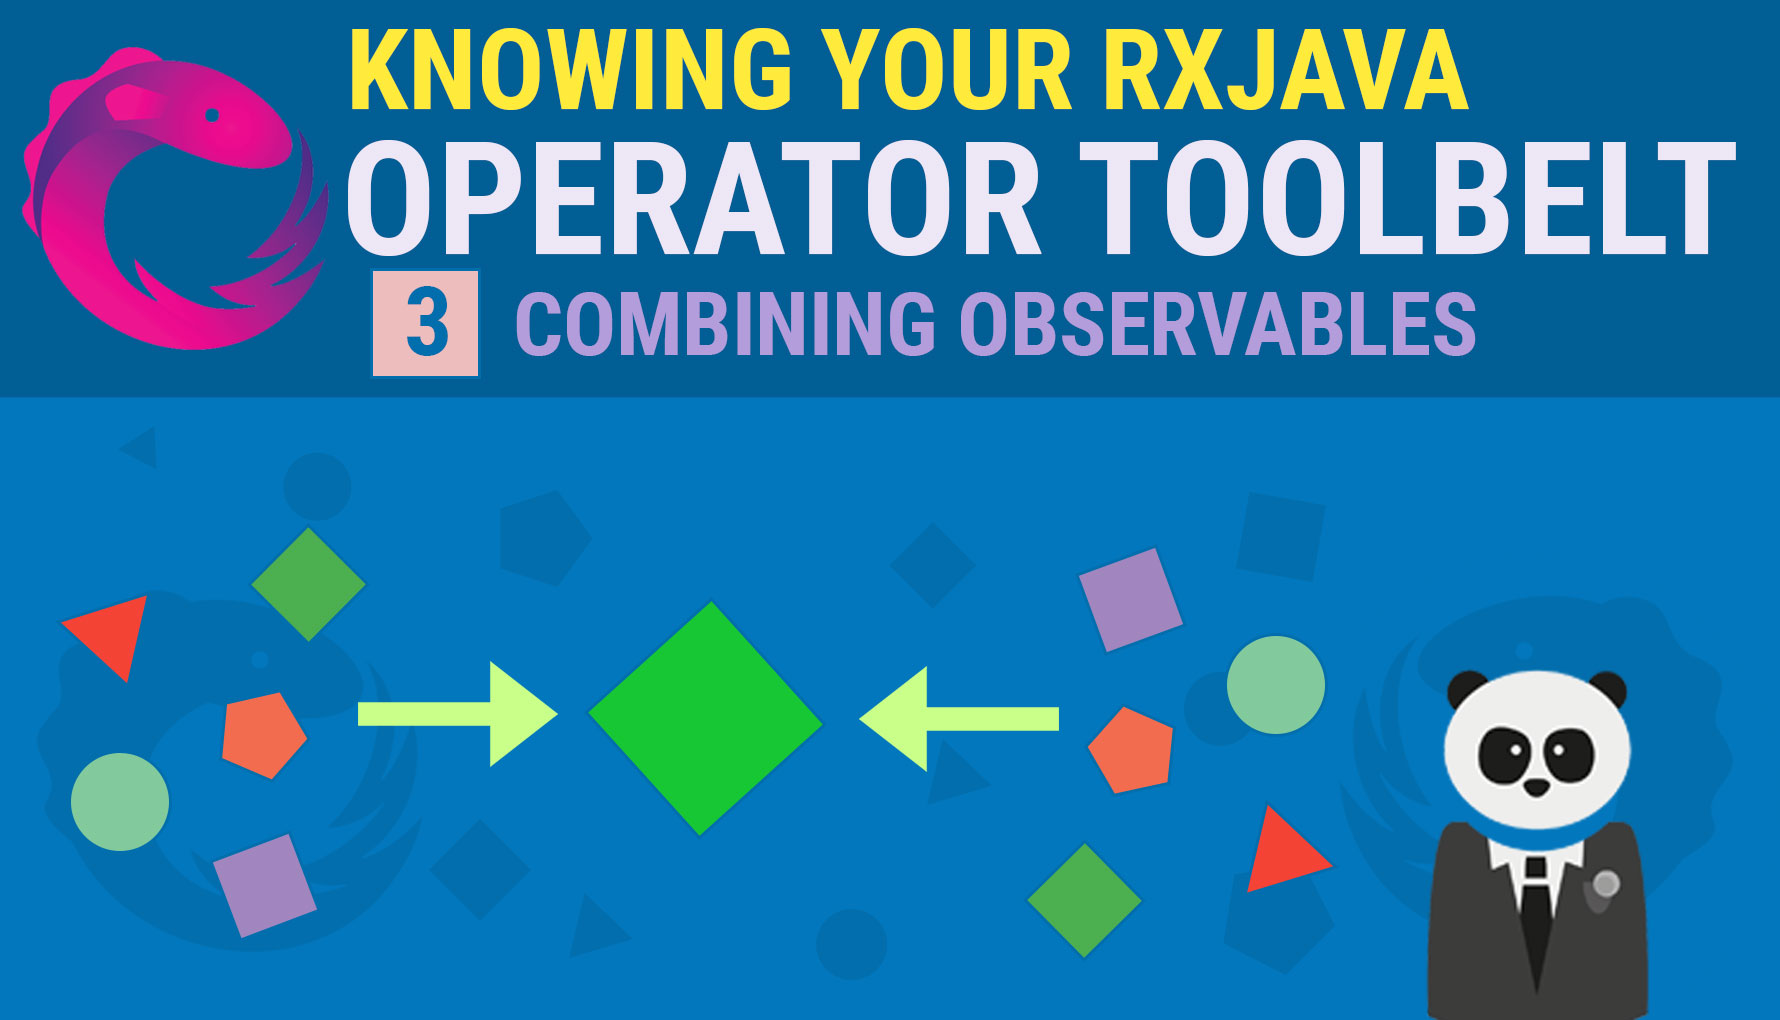 Knowing your RxJava Operator Toolbelt 3: Combining Observables